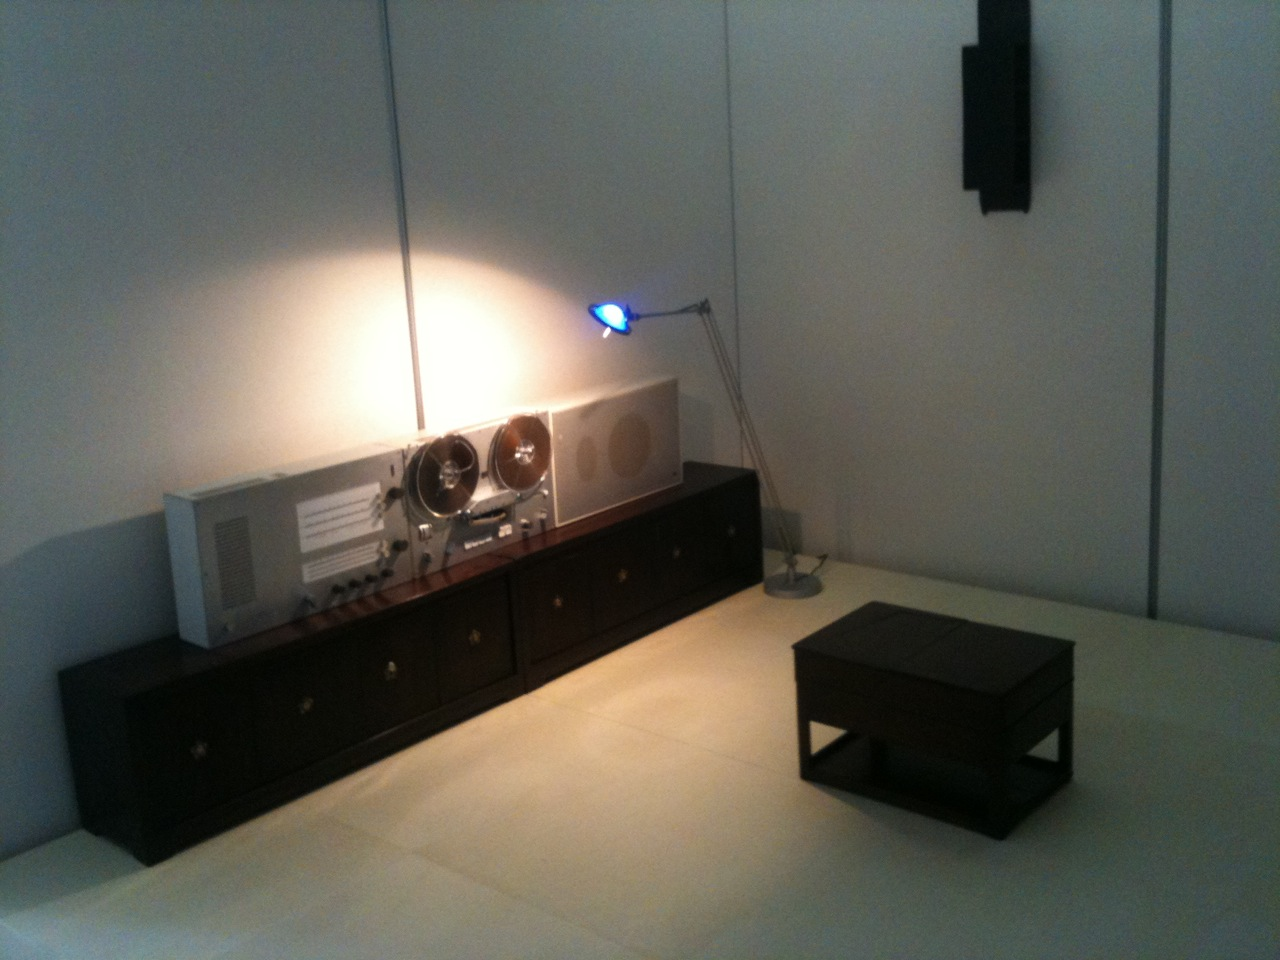 Today's visit to the Dieter Rams Exhibition